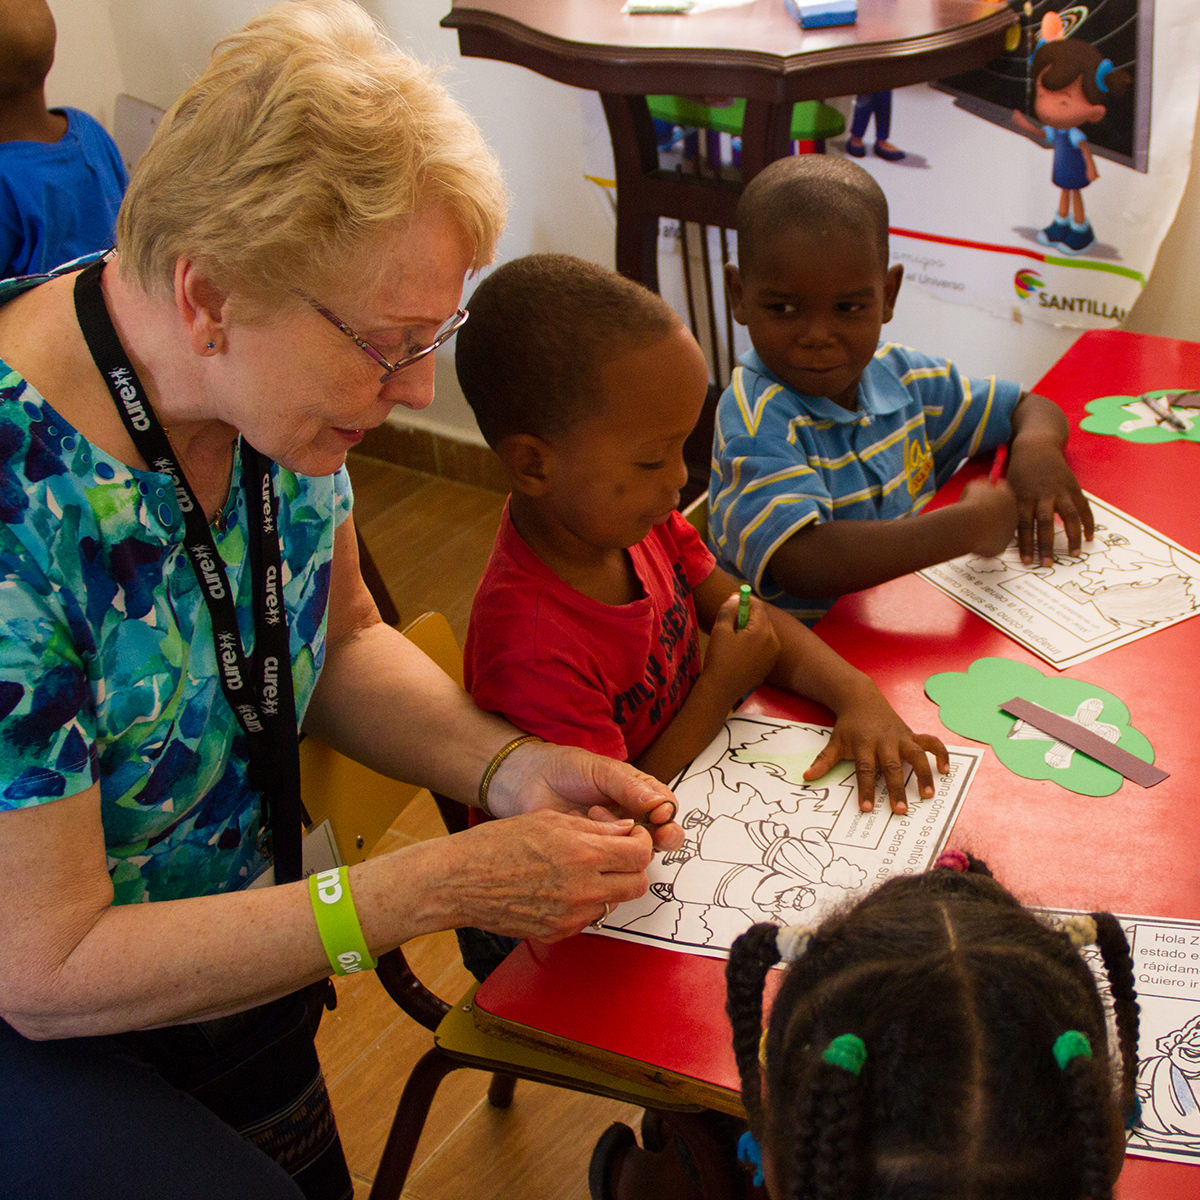 Sharon Amey living with purpose at Garden Spot Village by helping children at school.